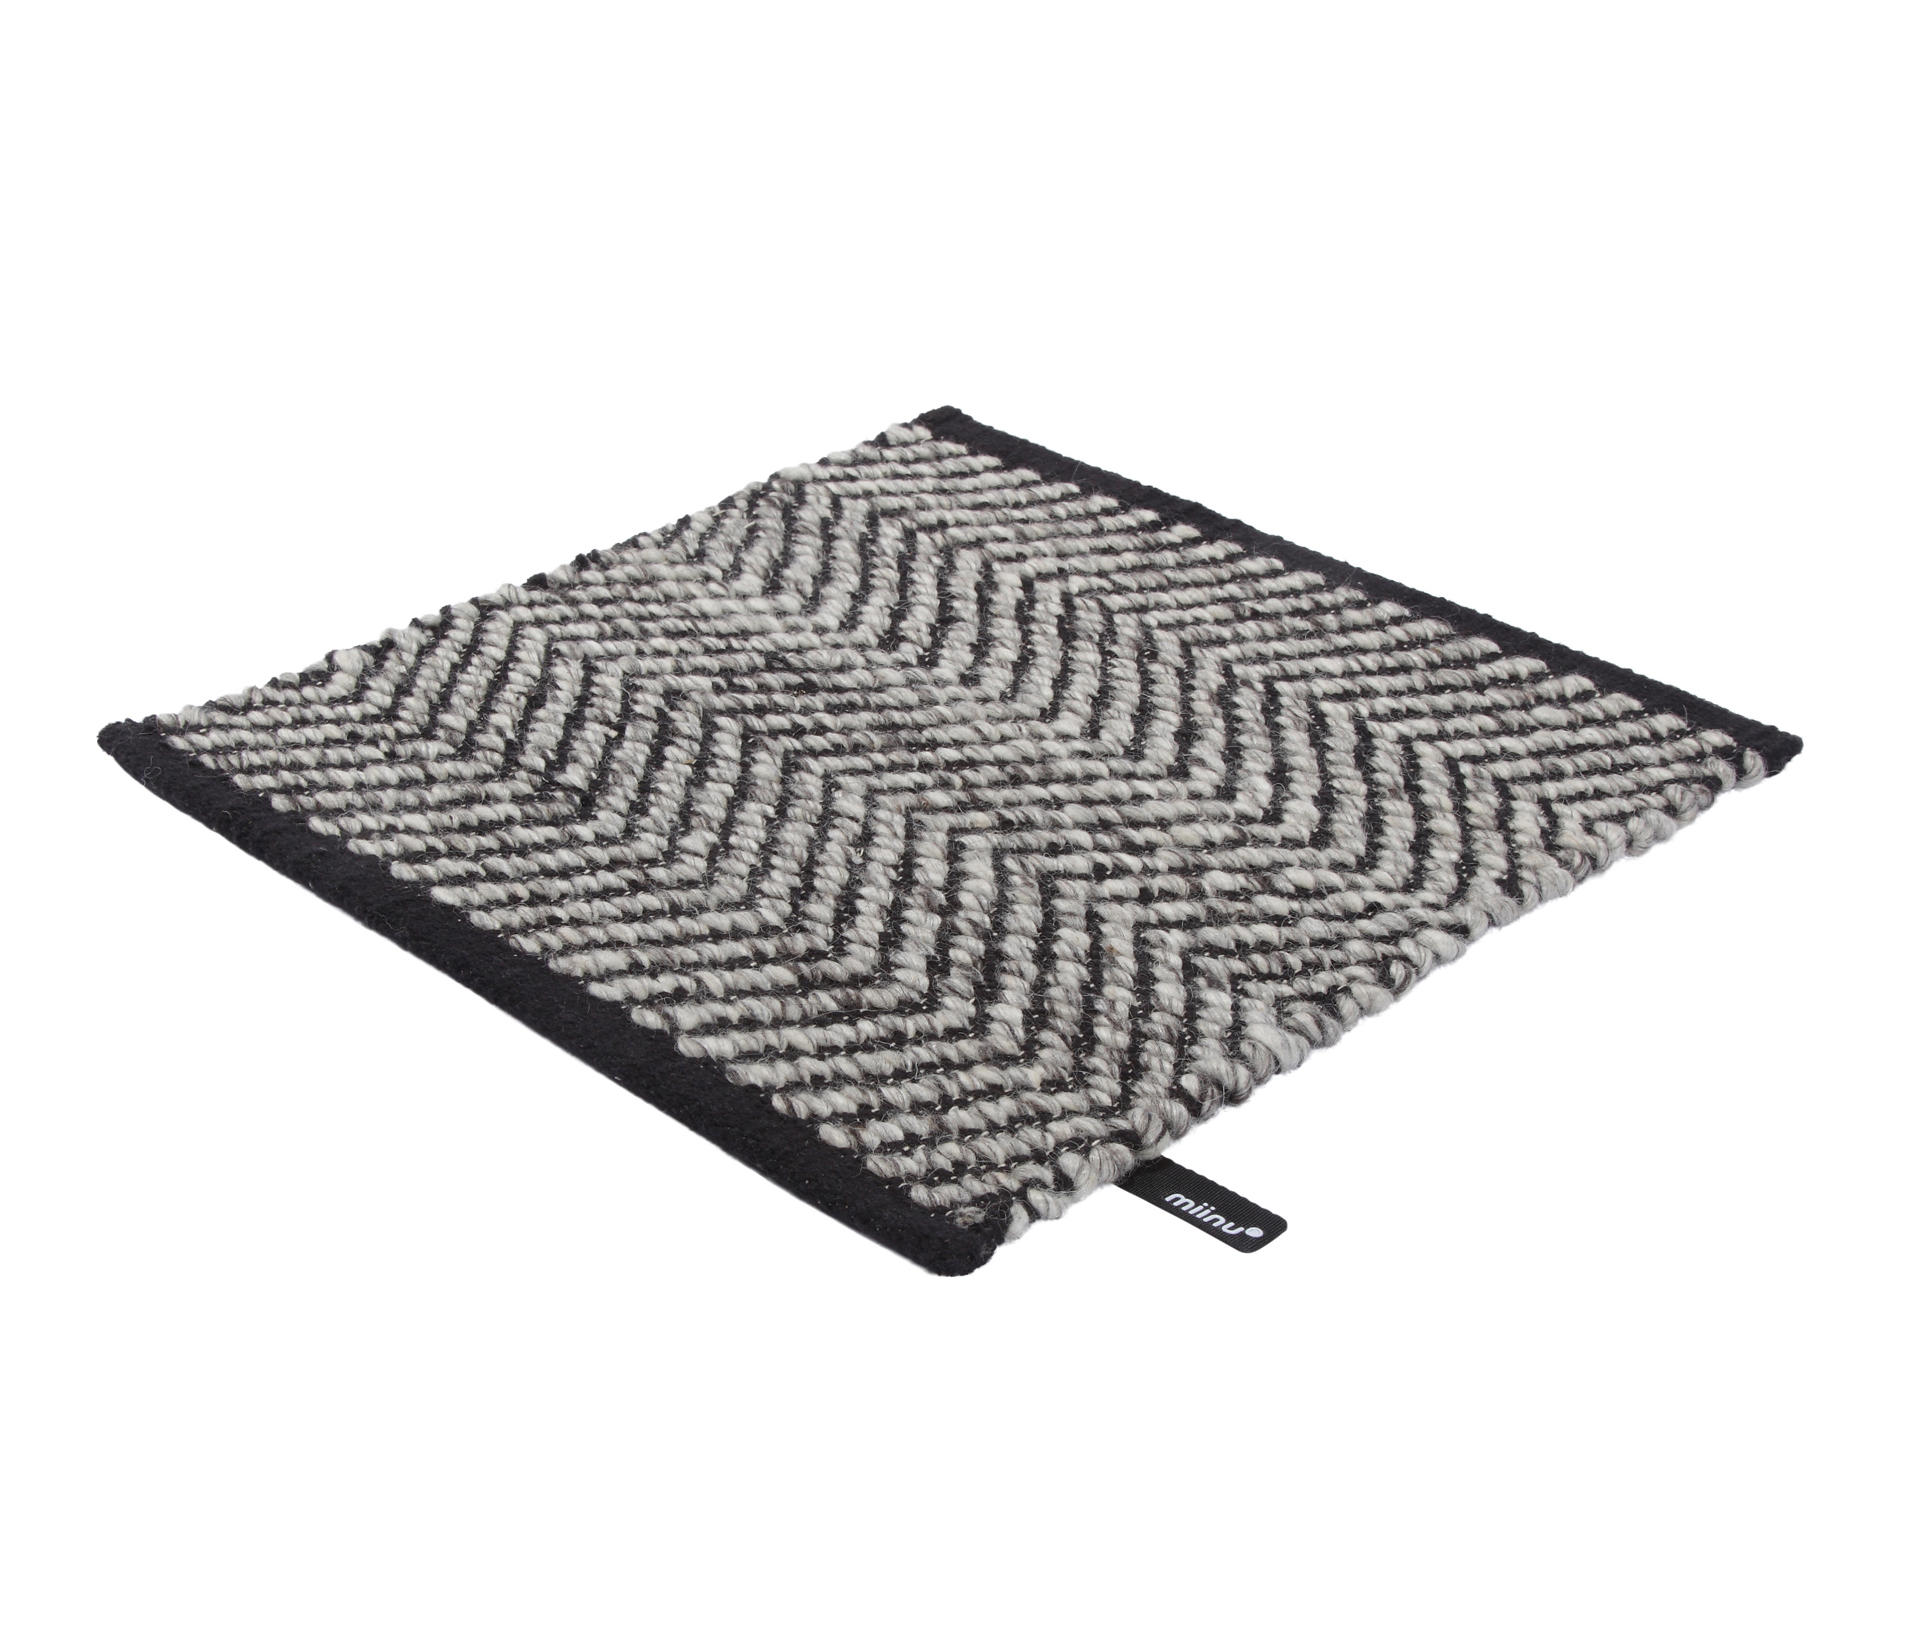 wavedash gray rugs designer rugs from miinu architonic. Black Bedroom Furniture Sets. Home Design Ideas